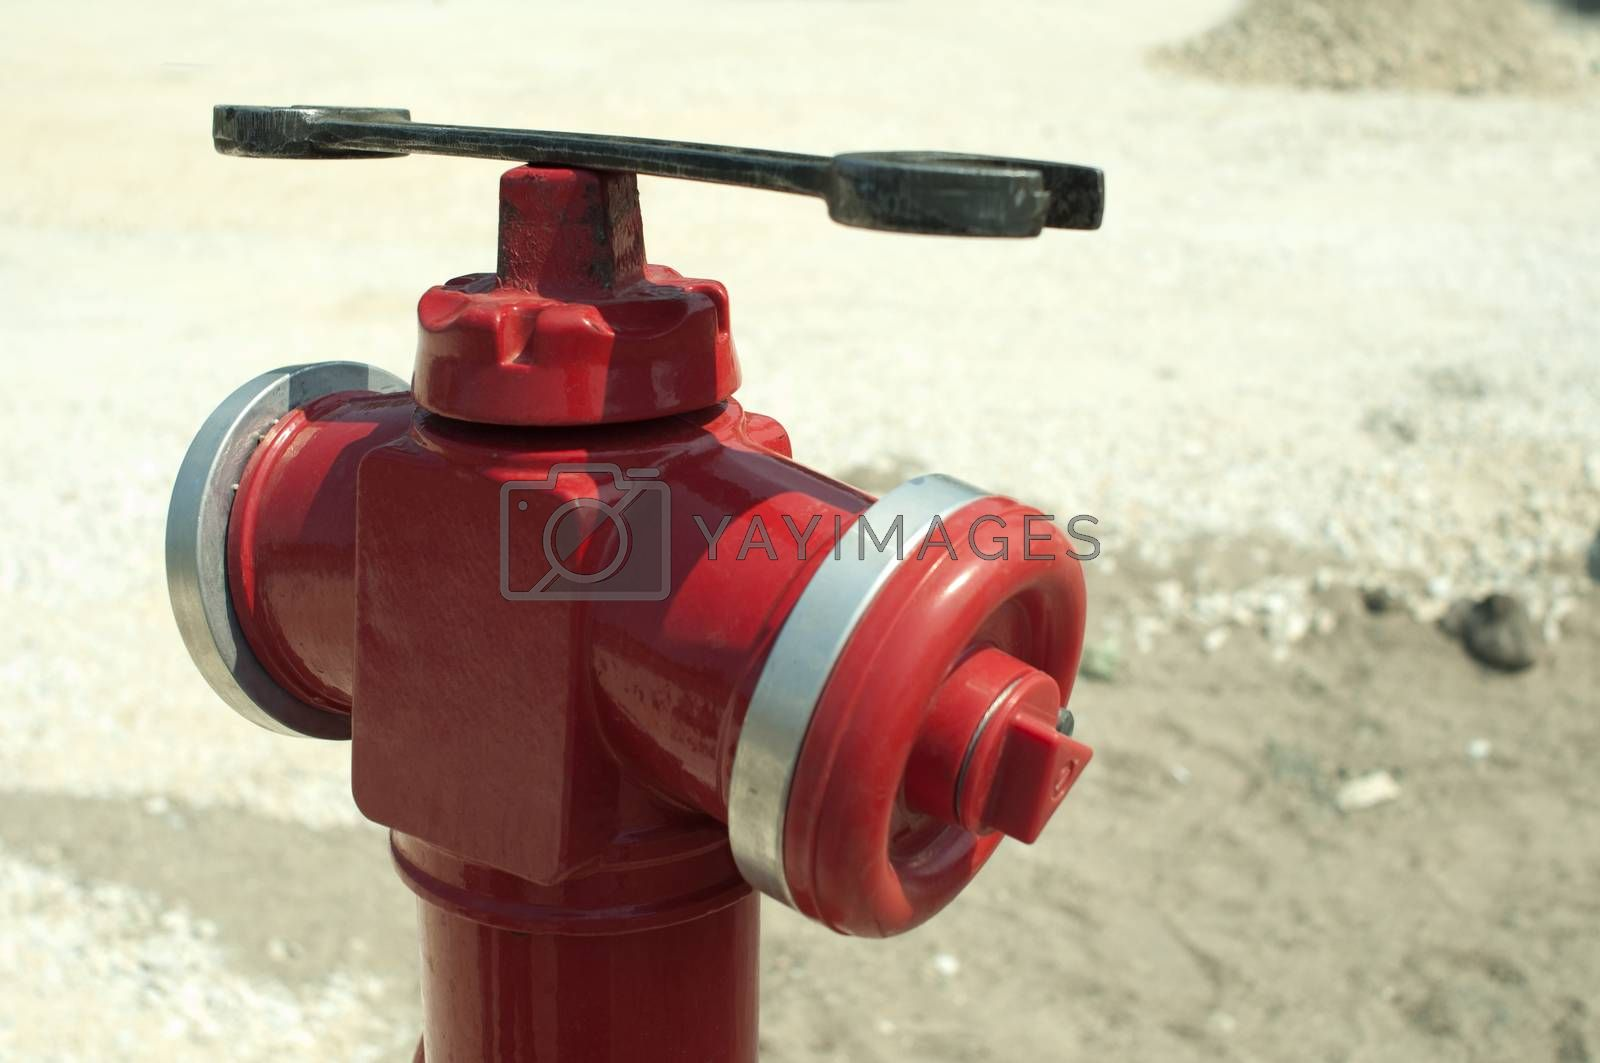 Fire hydrant and wrench